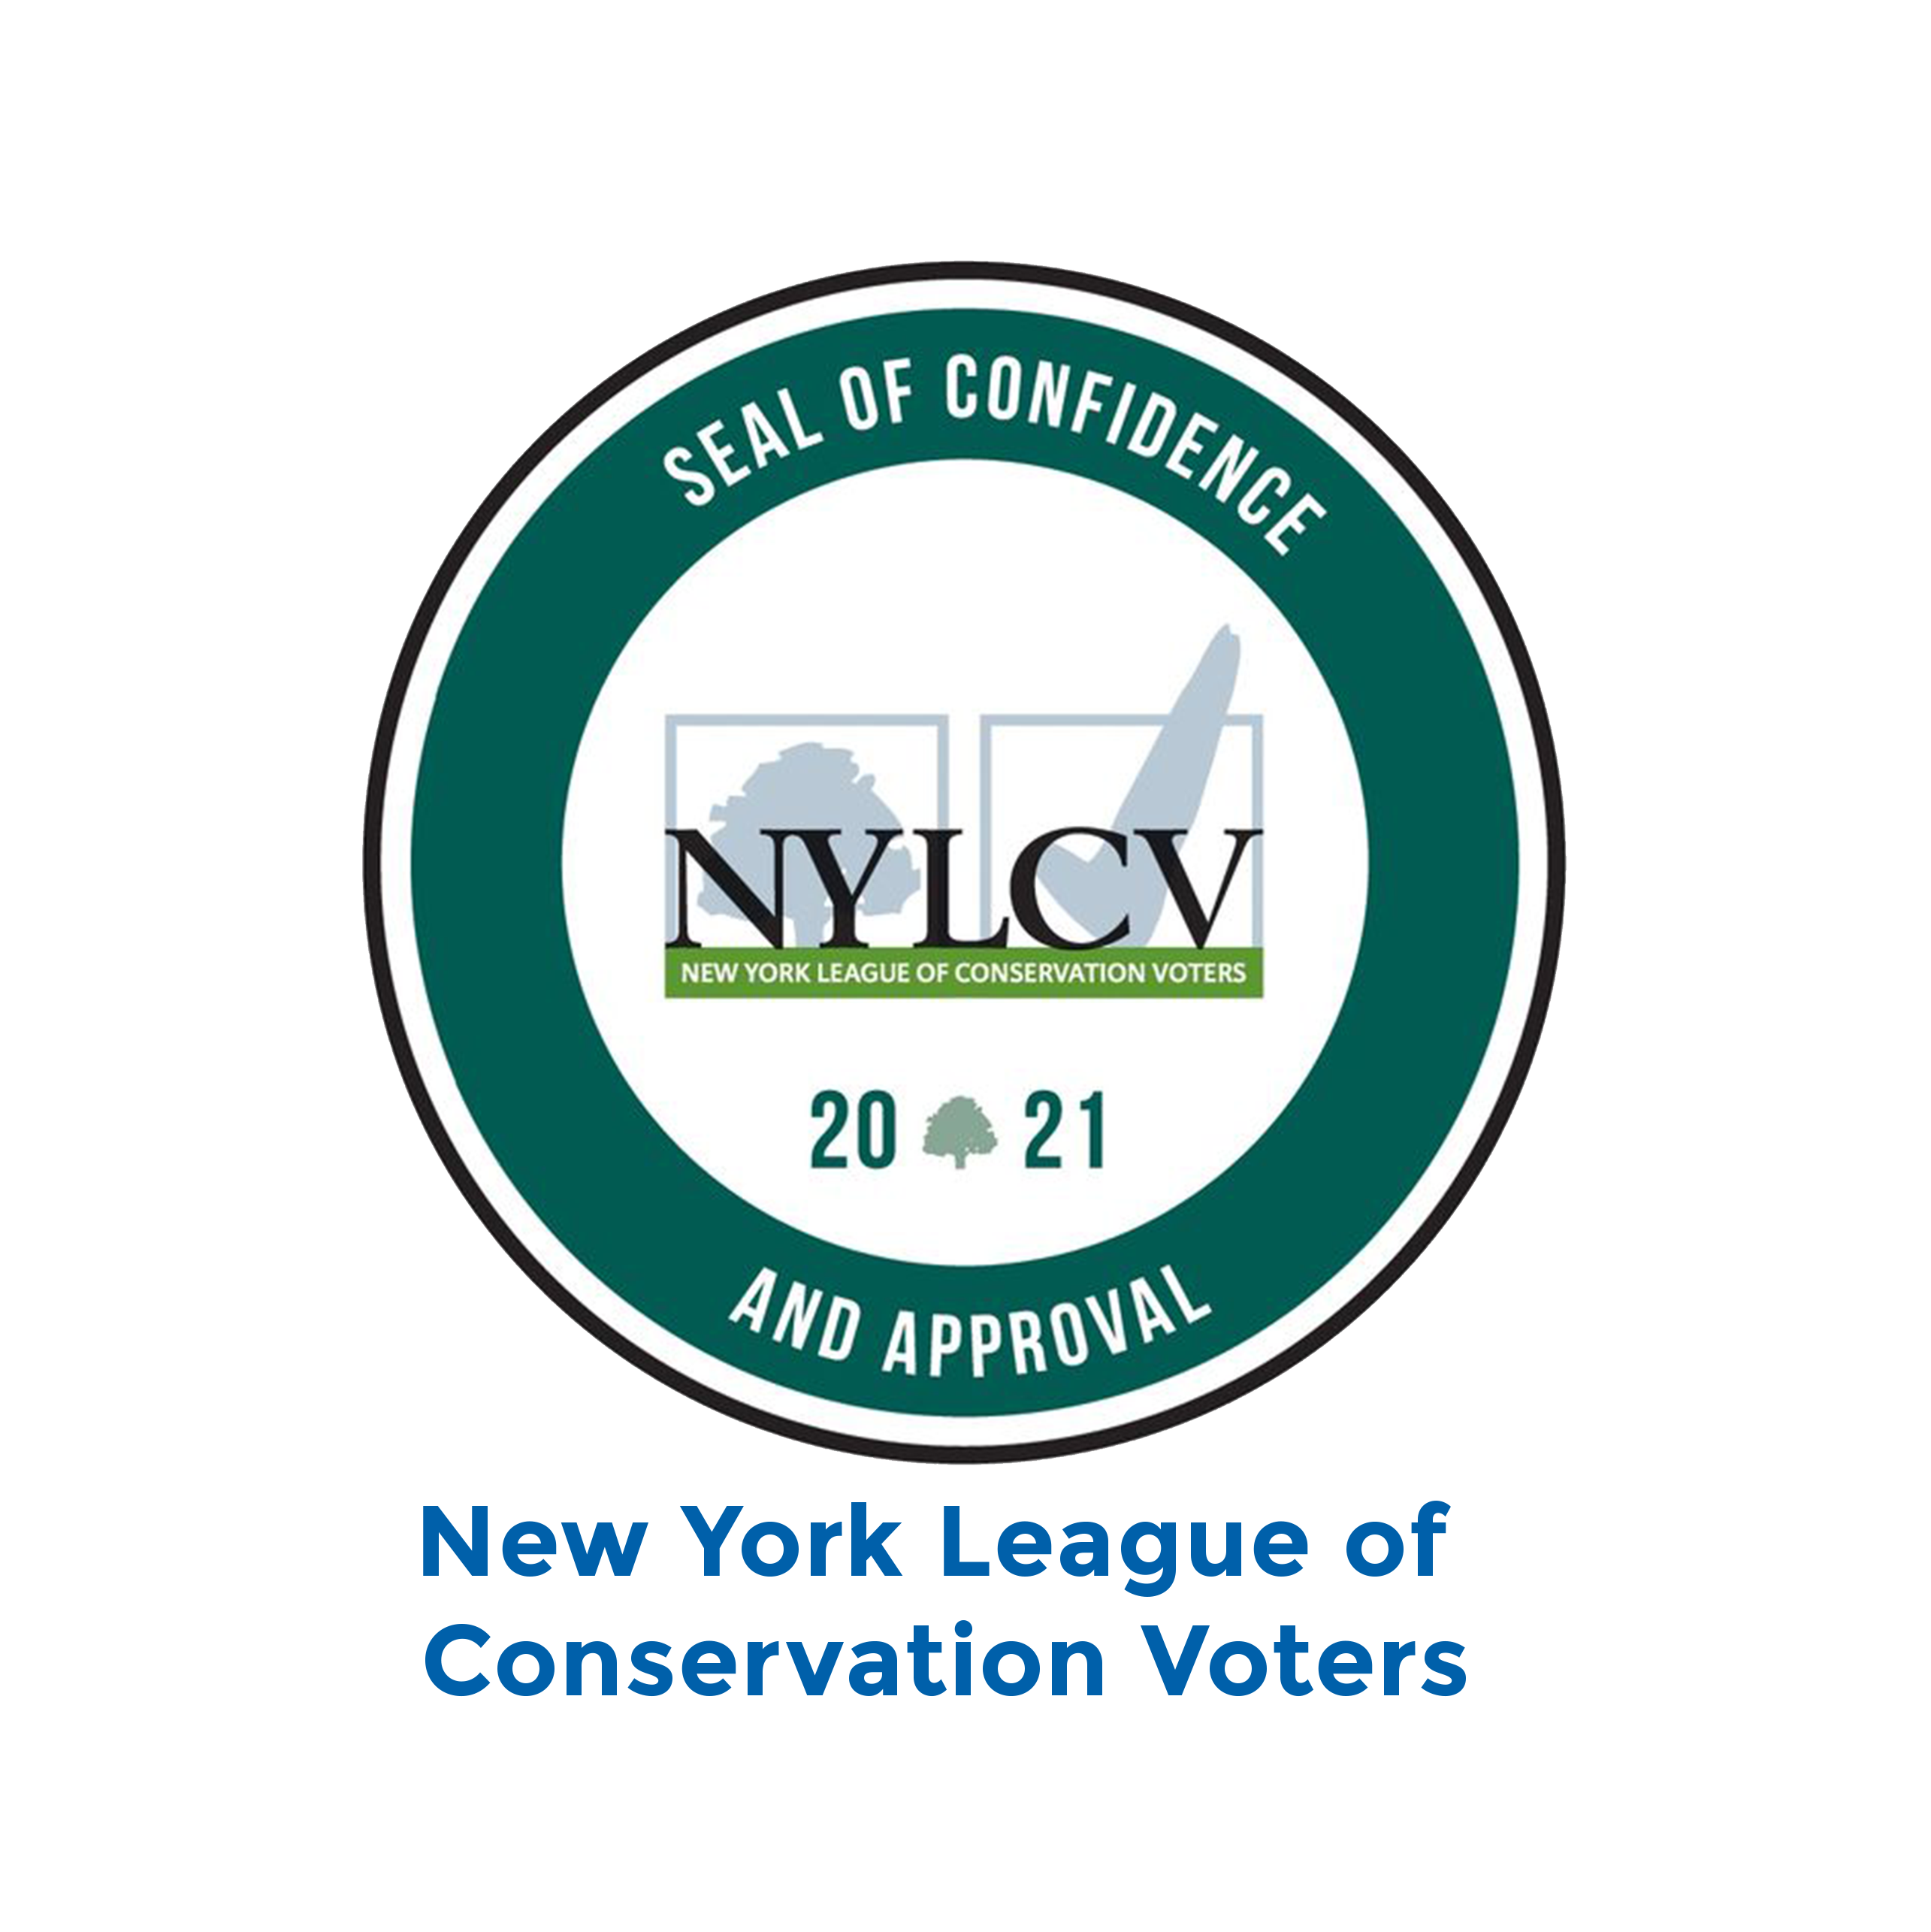 New York League of Conservation Voters logo